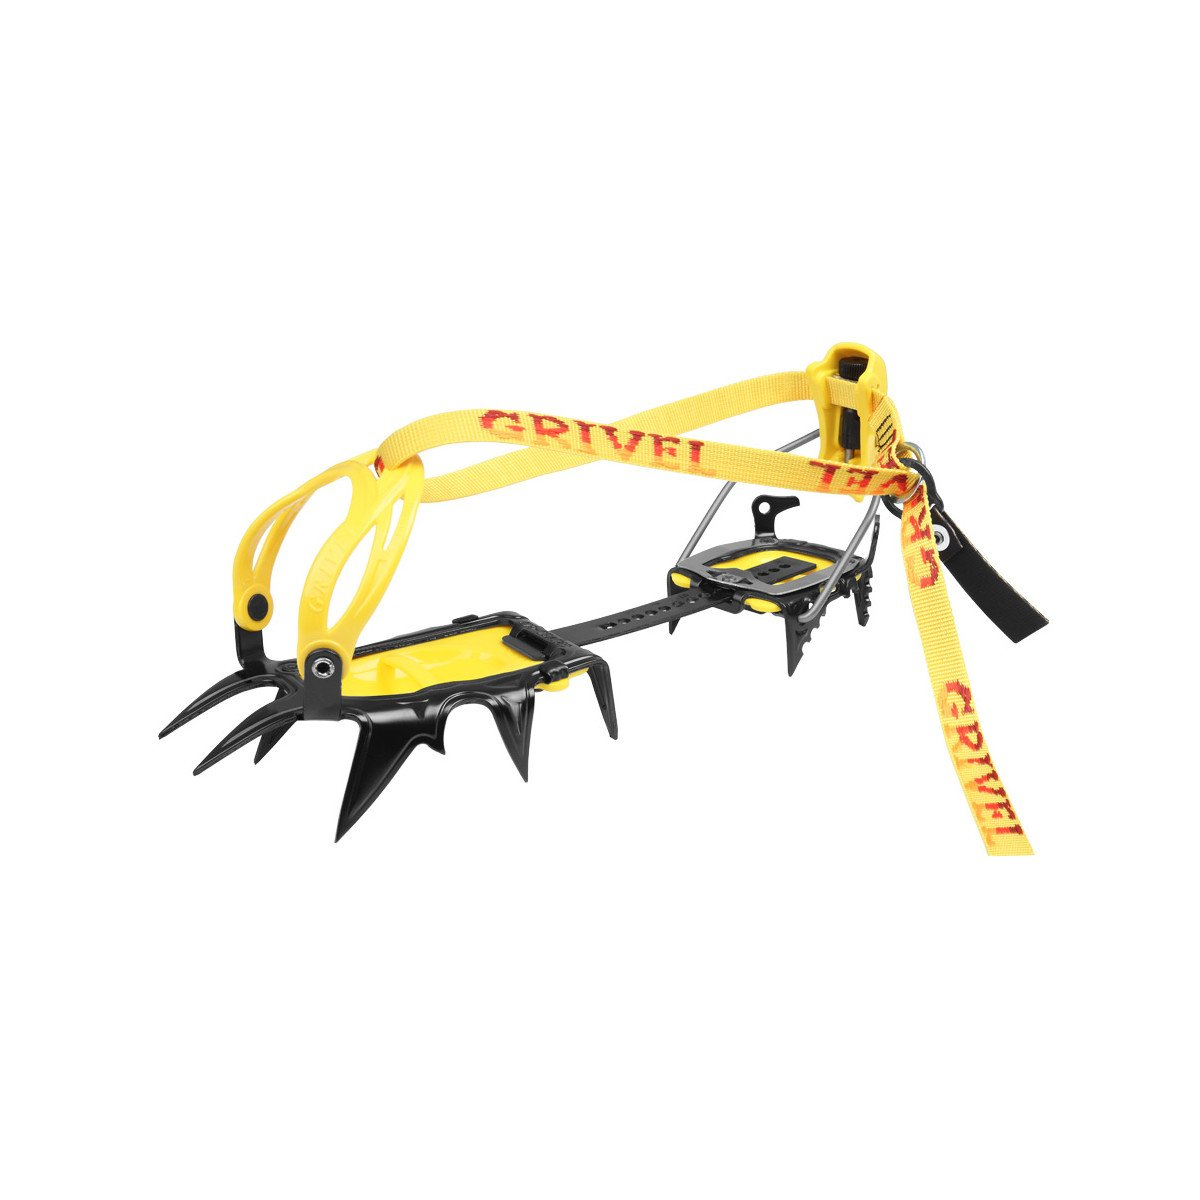 Crampons Online Shopping For Clothing Shoes Jewelry